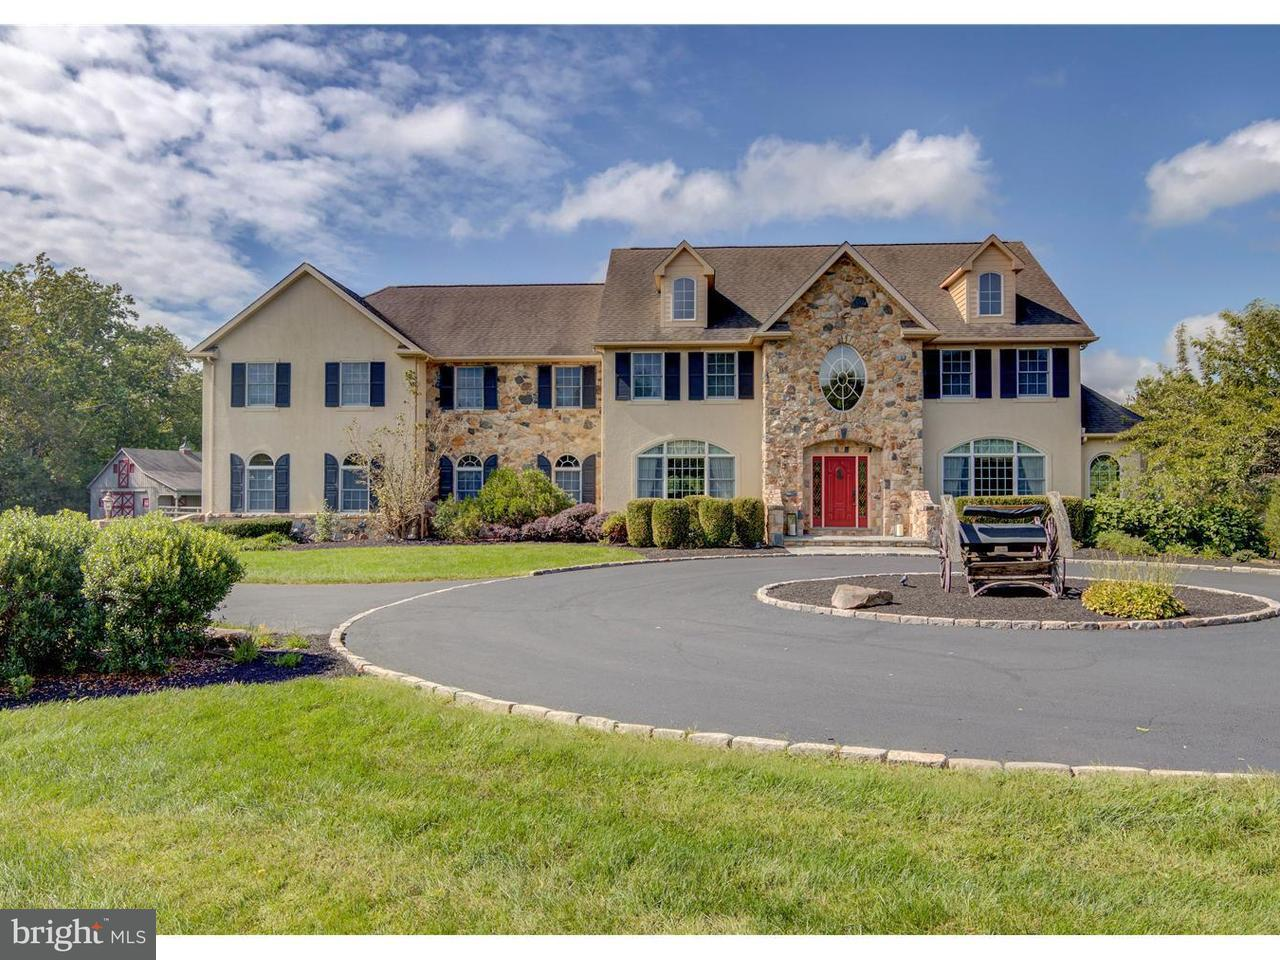 Single Family Home for Sale at 104 SAWMILL Road Landenberg, Pennsylvania 19350 United States